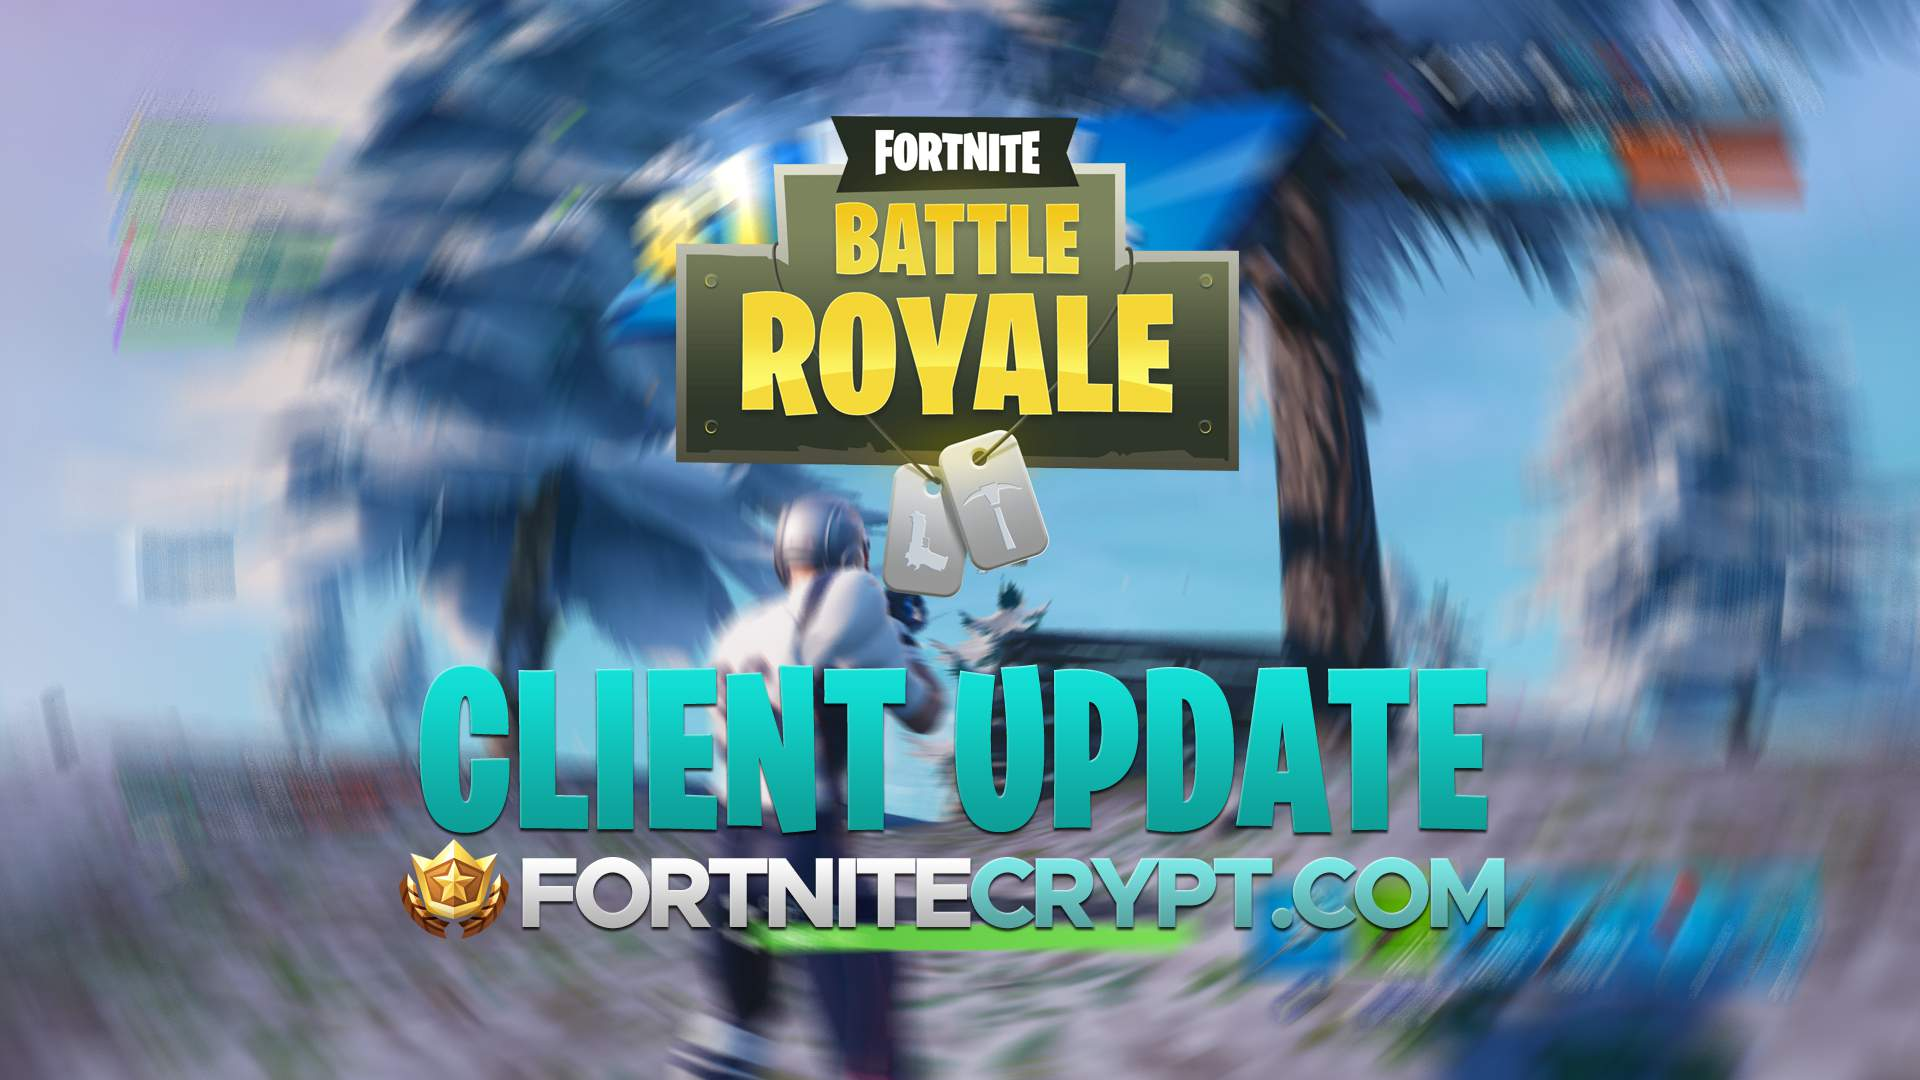 Epic Games Announce Surprise Fortnite Patch For March 29 Fortnitecrypt